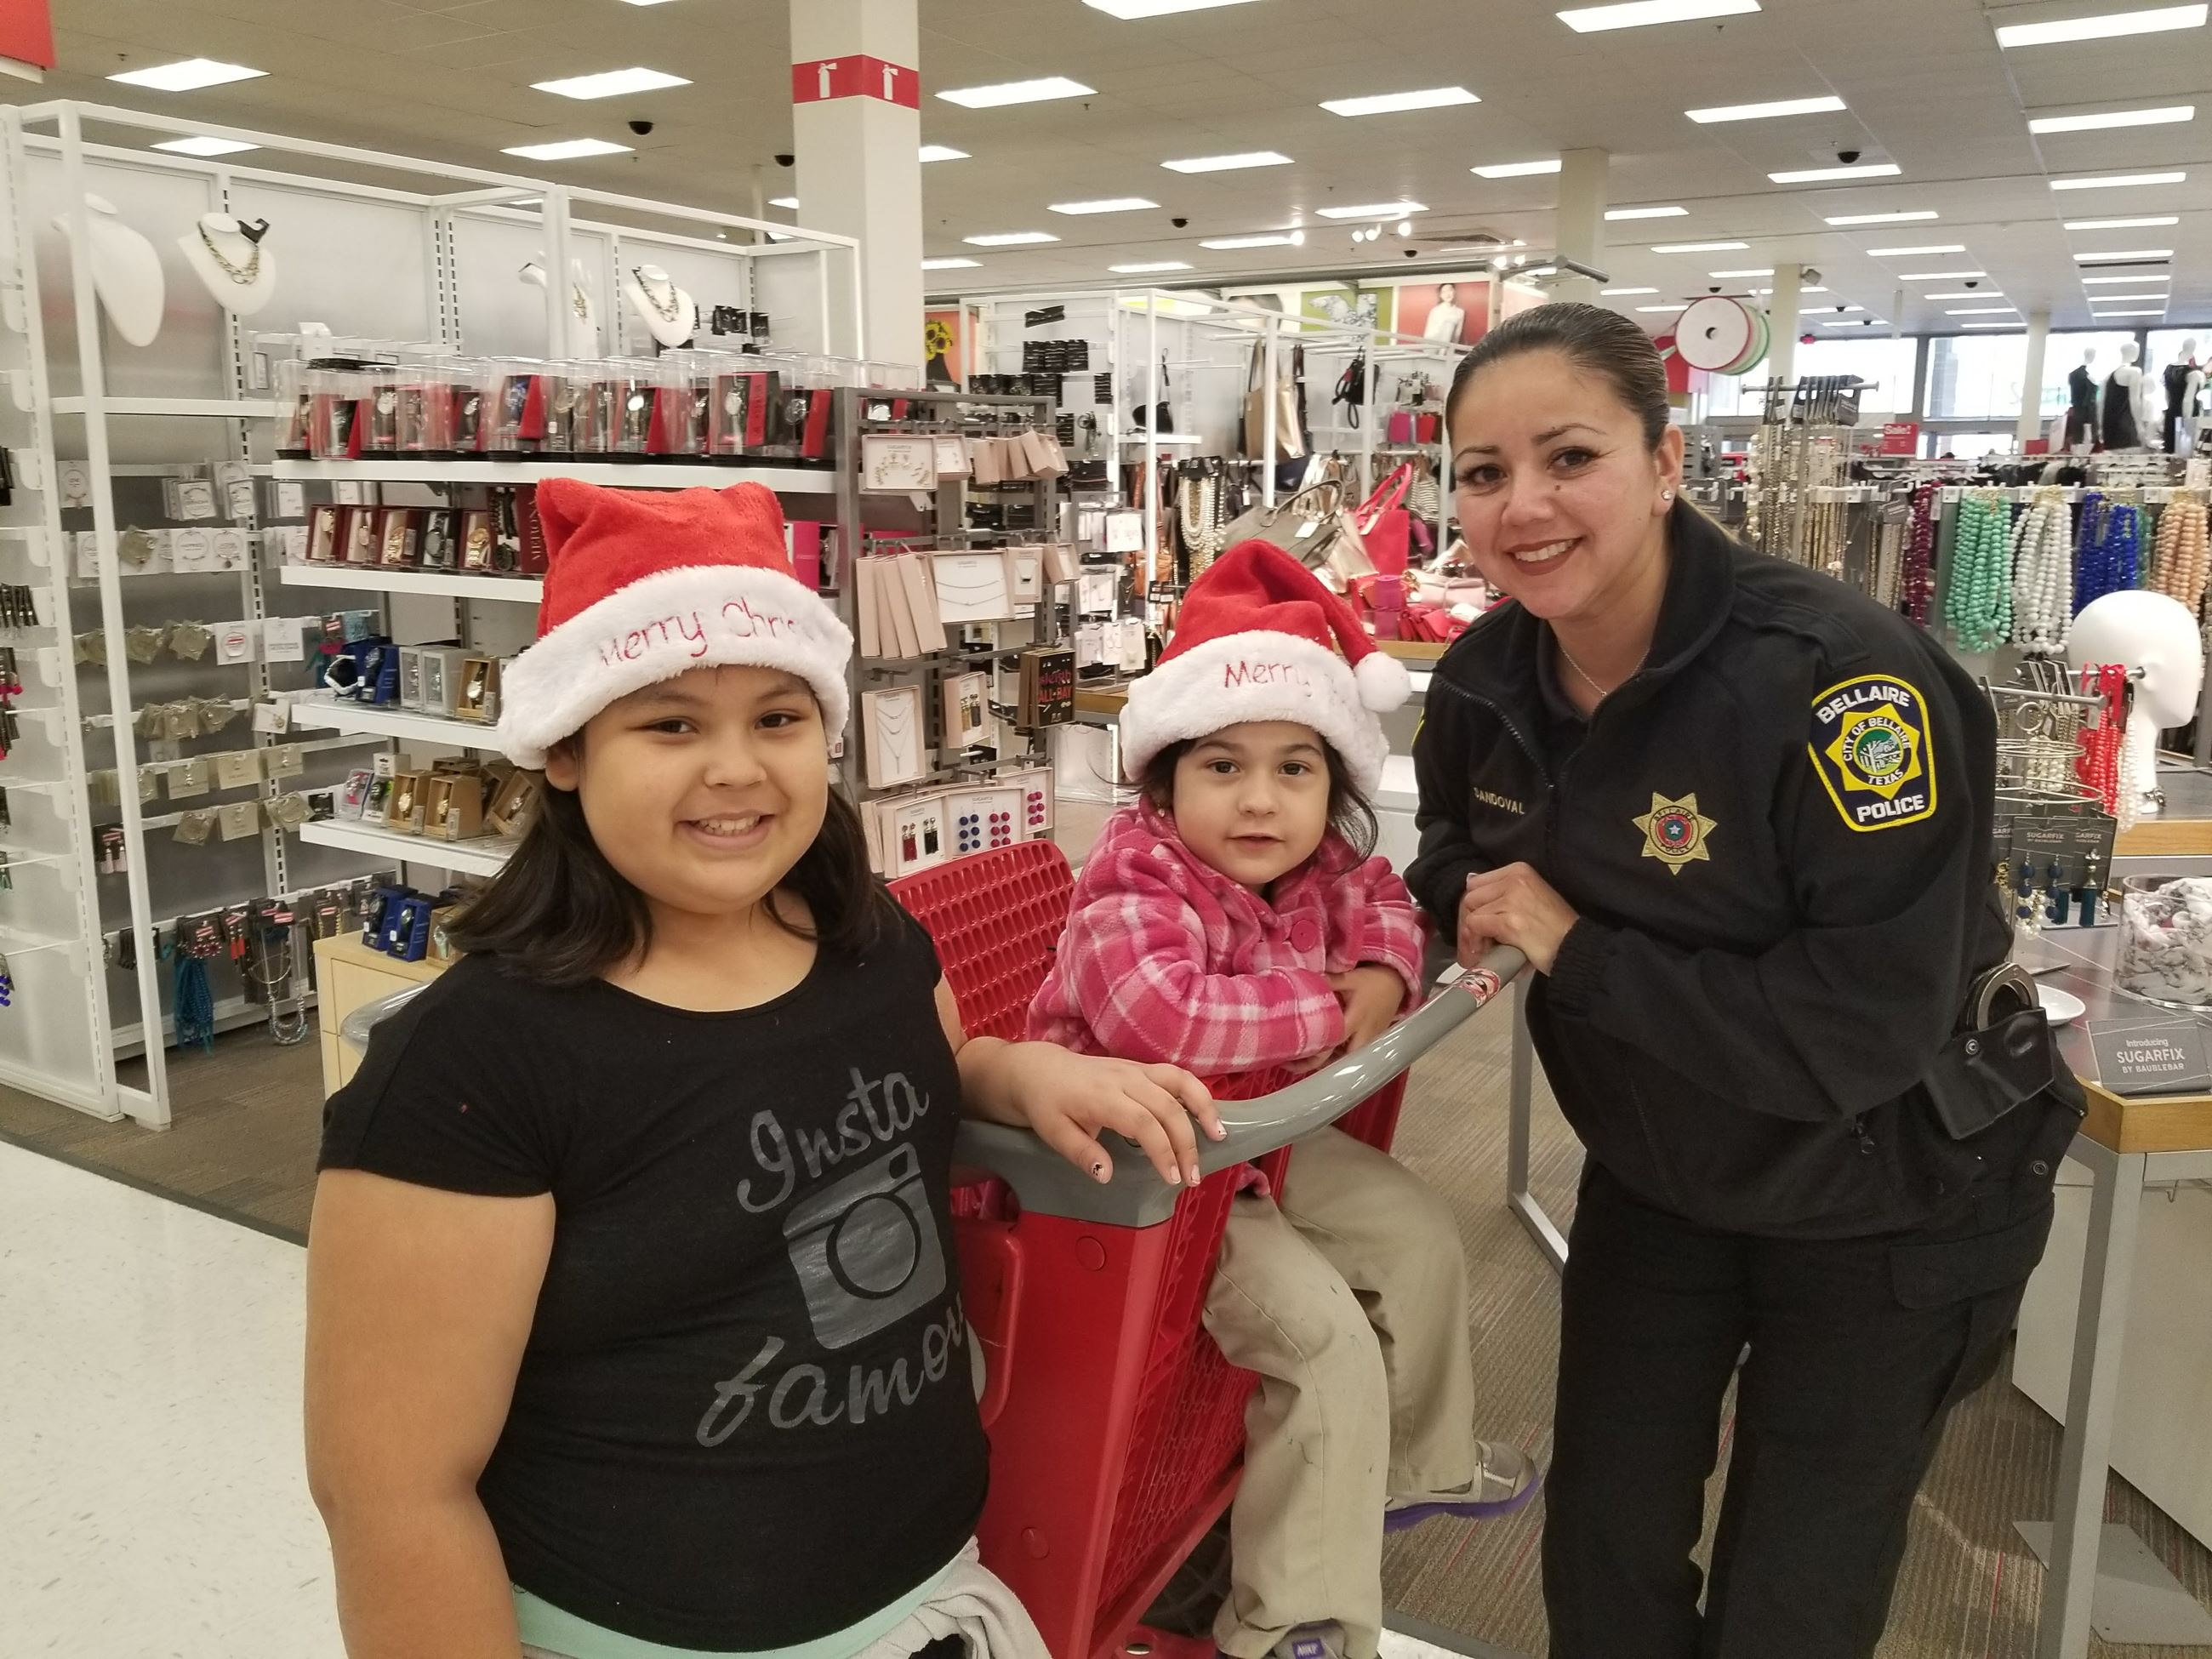 Officer with two little girls at Shop with a Cop event